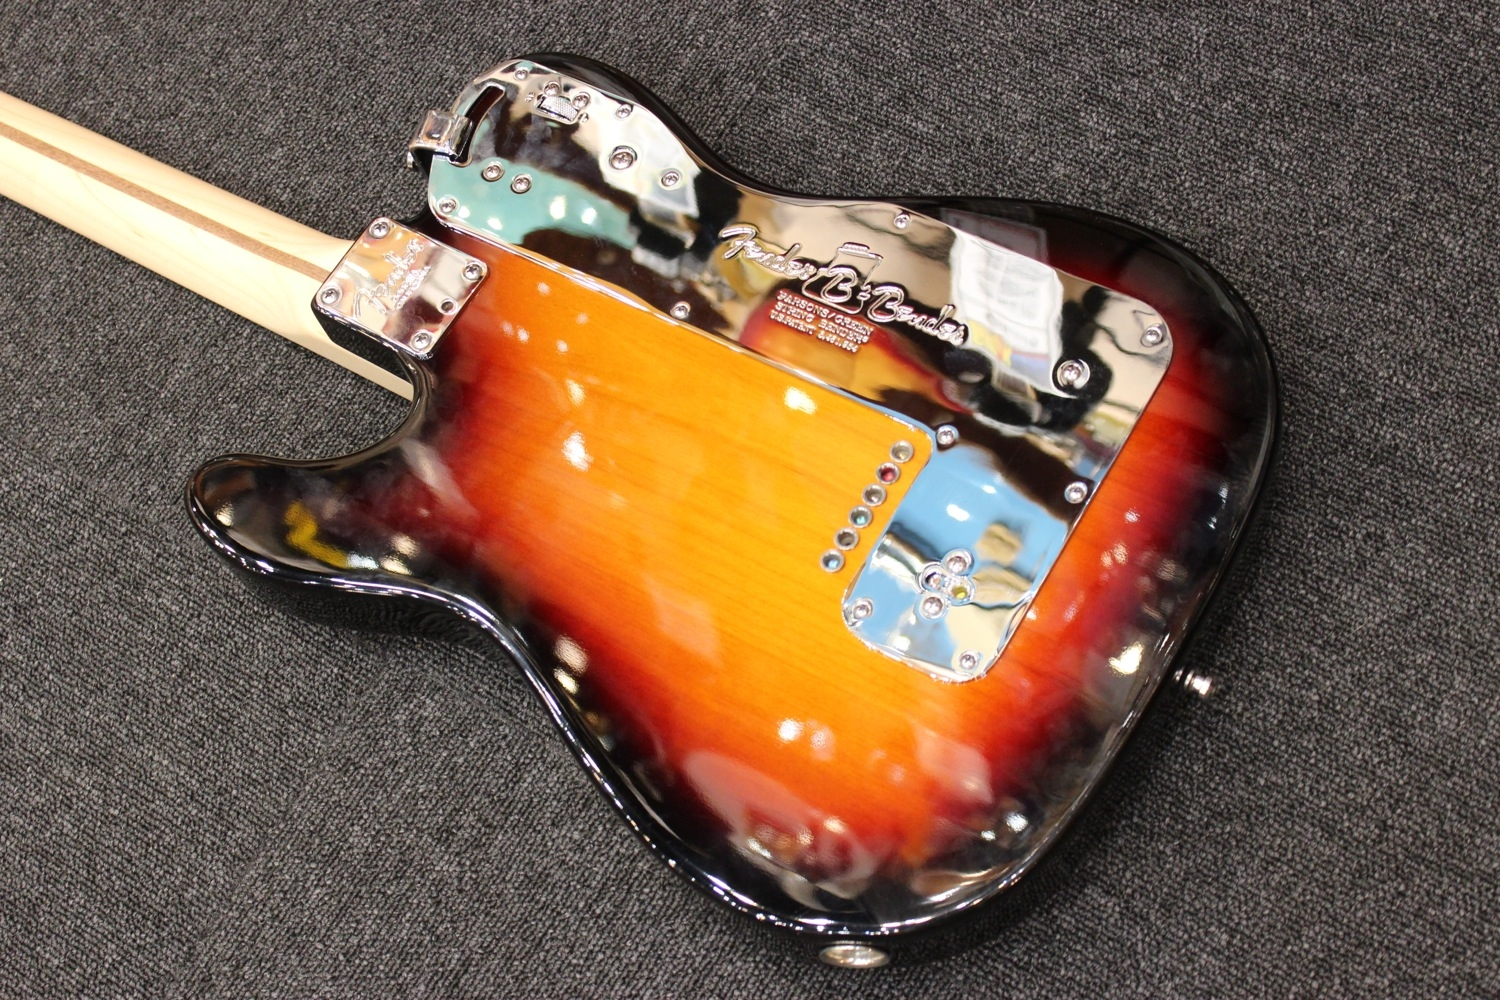 fender american nashville b bender telecaster 3 colour sunburst maple pre owned. Black Bedroom Furniture Sets. Home Design Ideas